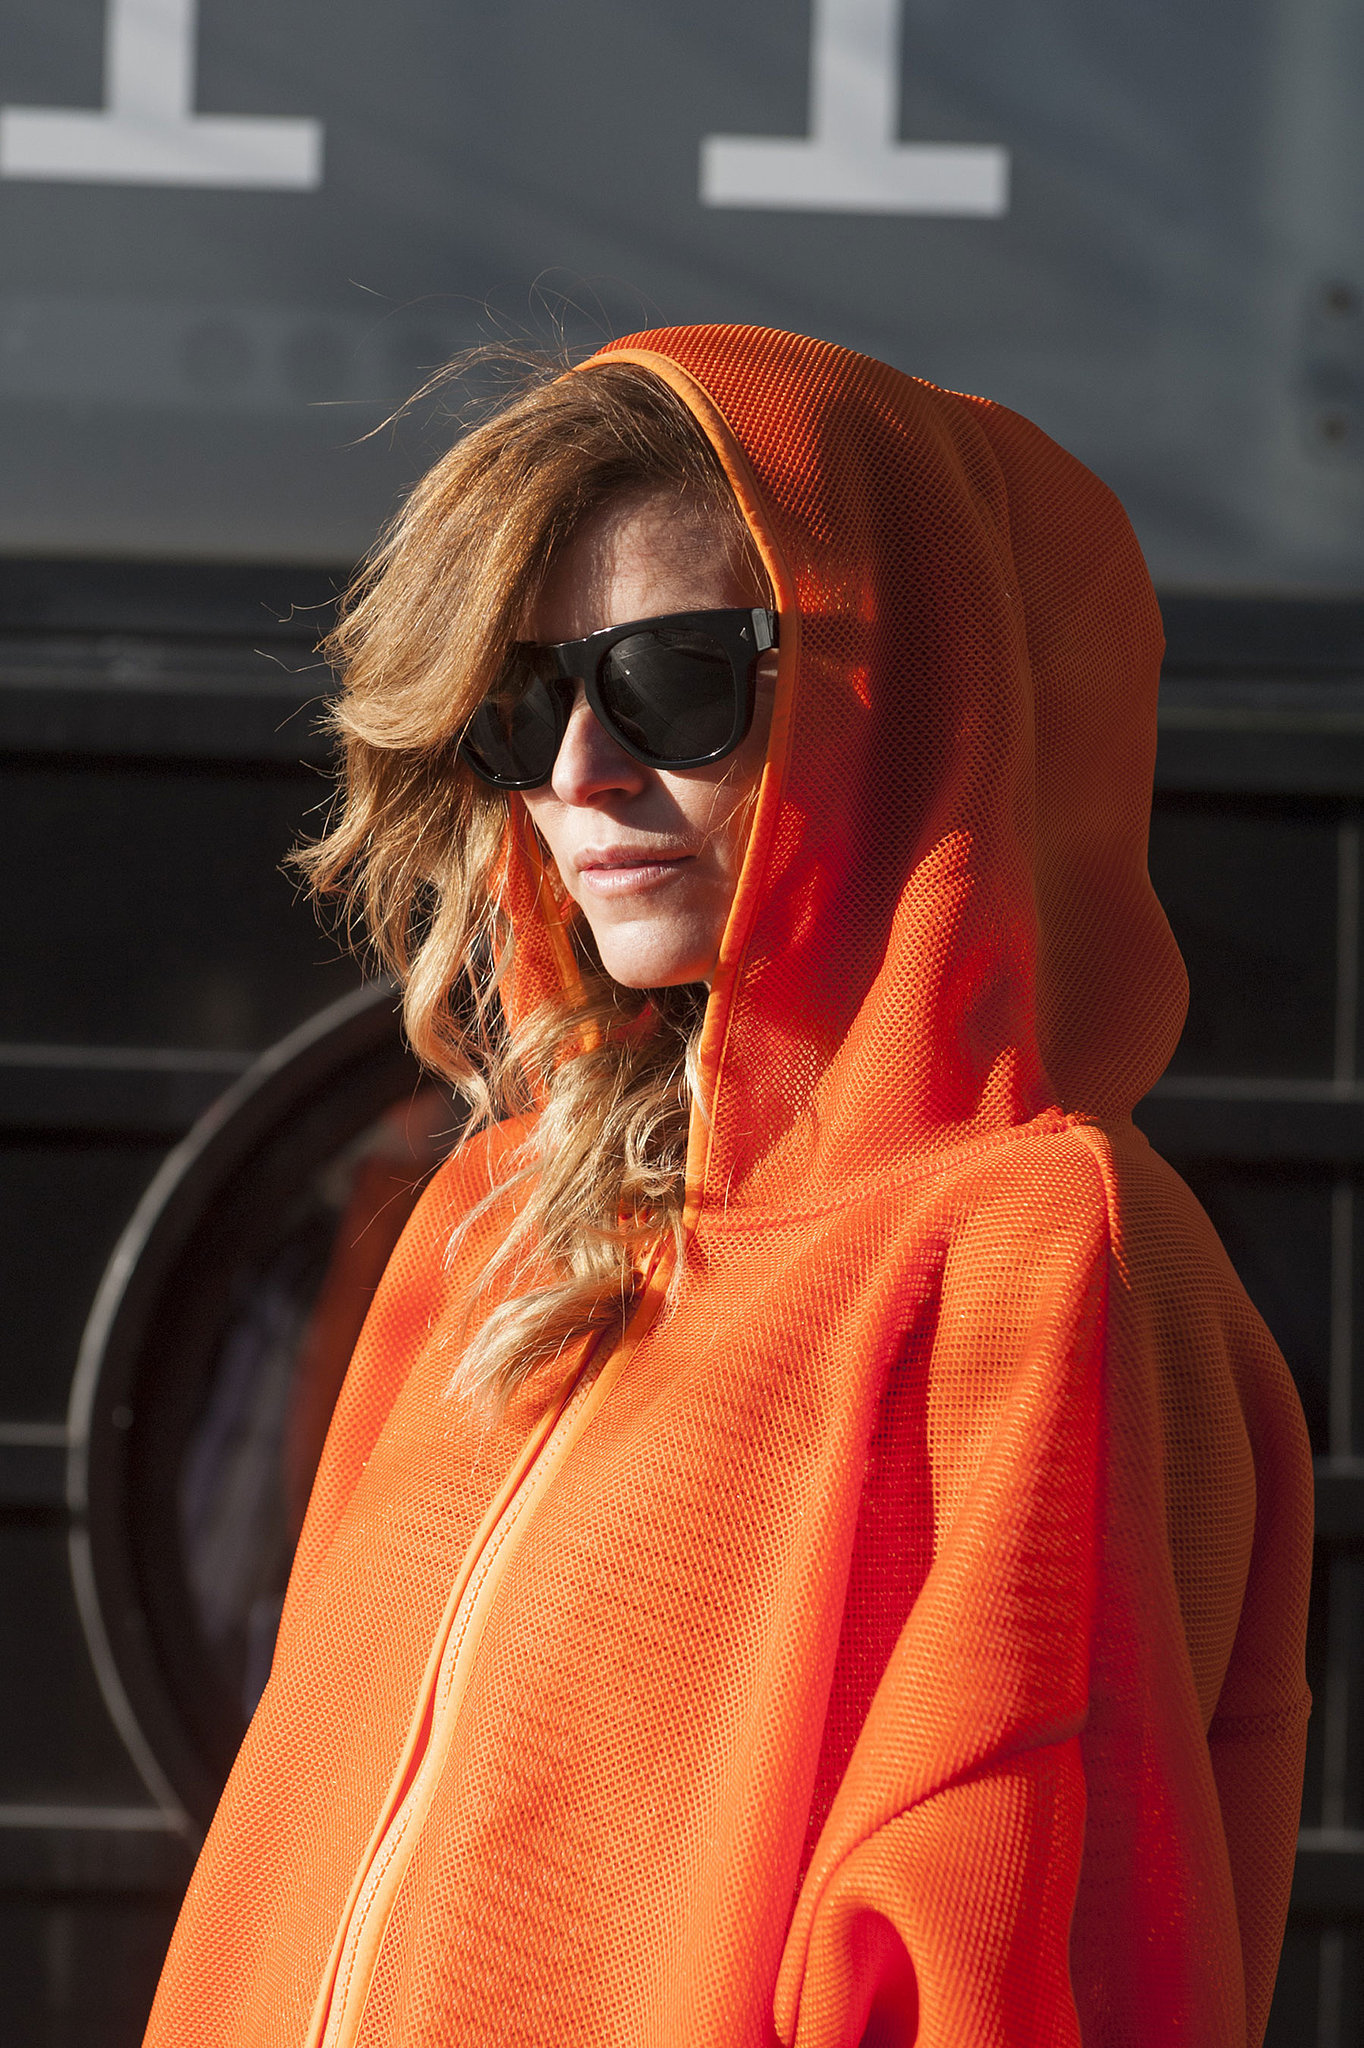 The style crowd can make anything a great accessory — sunglasses and even the hood of a jacket.